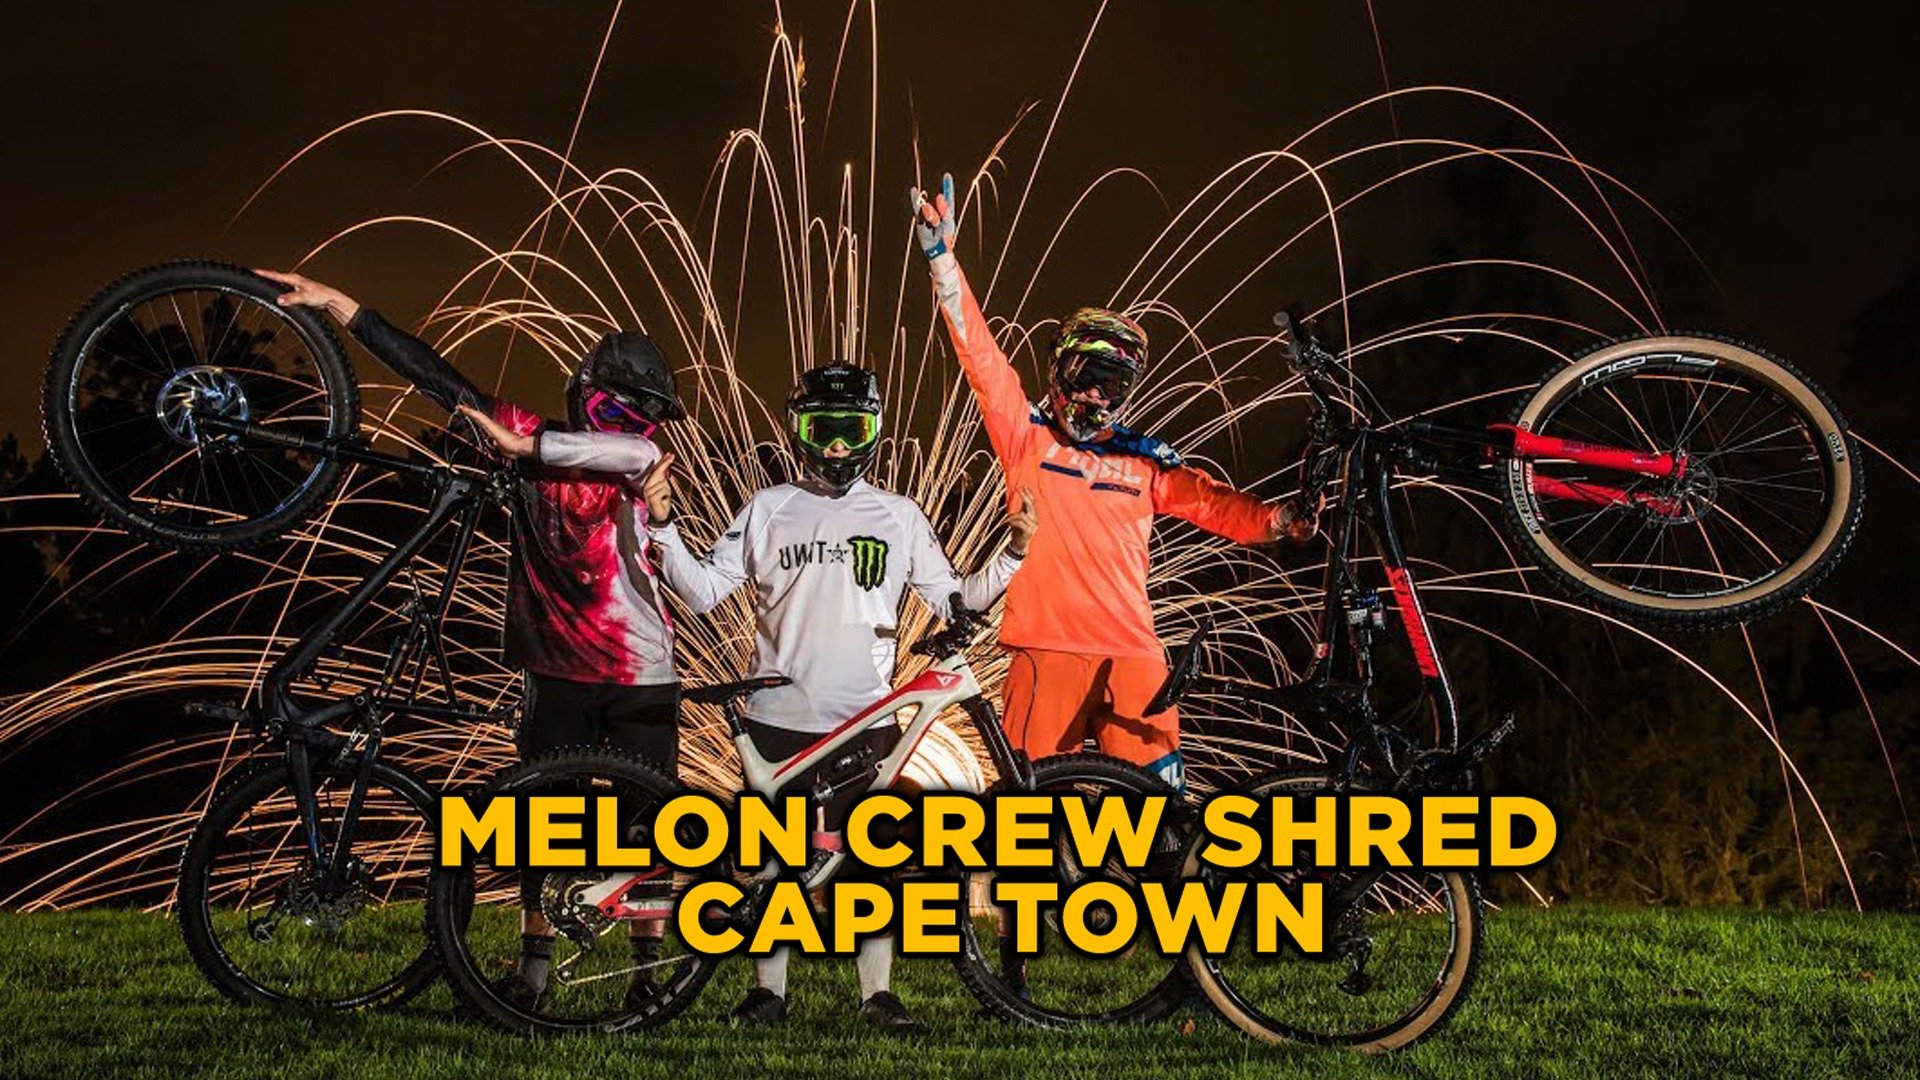 Melon Crew Shred Cape Town